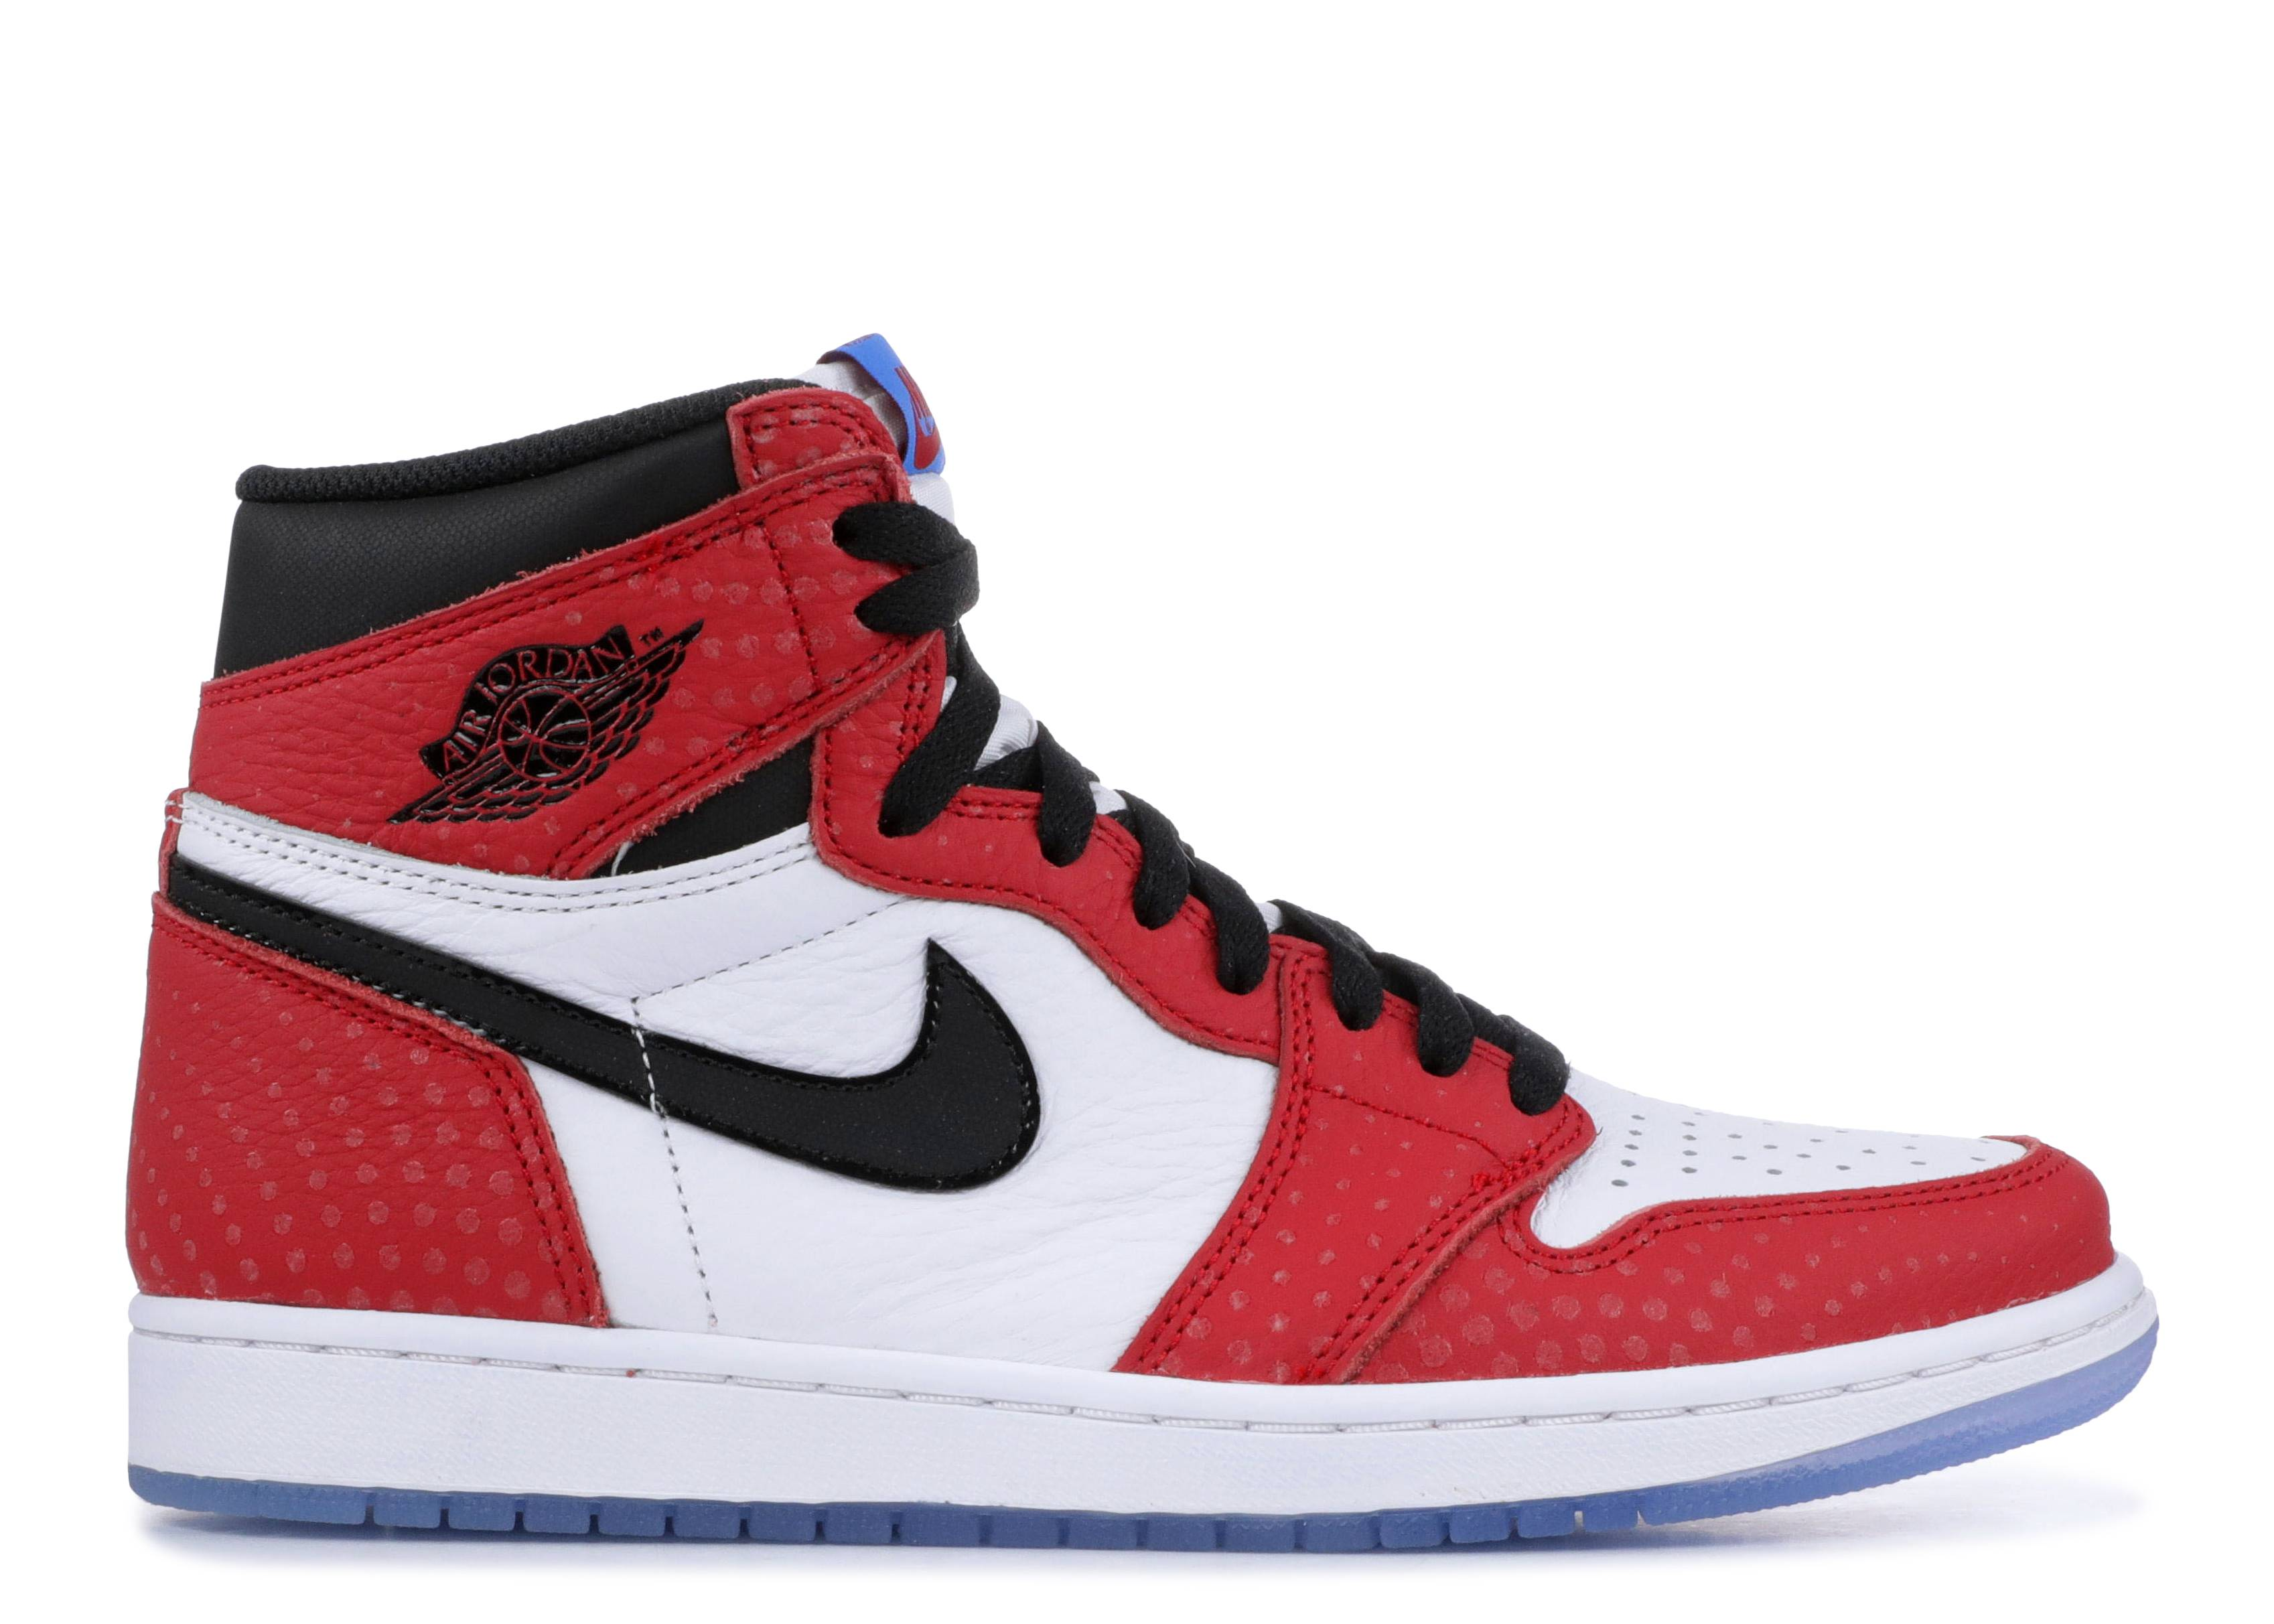 new arrival ce710 07e69 air jordan 1 retro high og